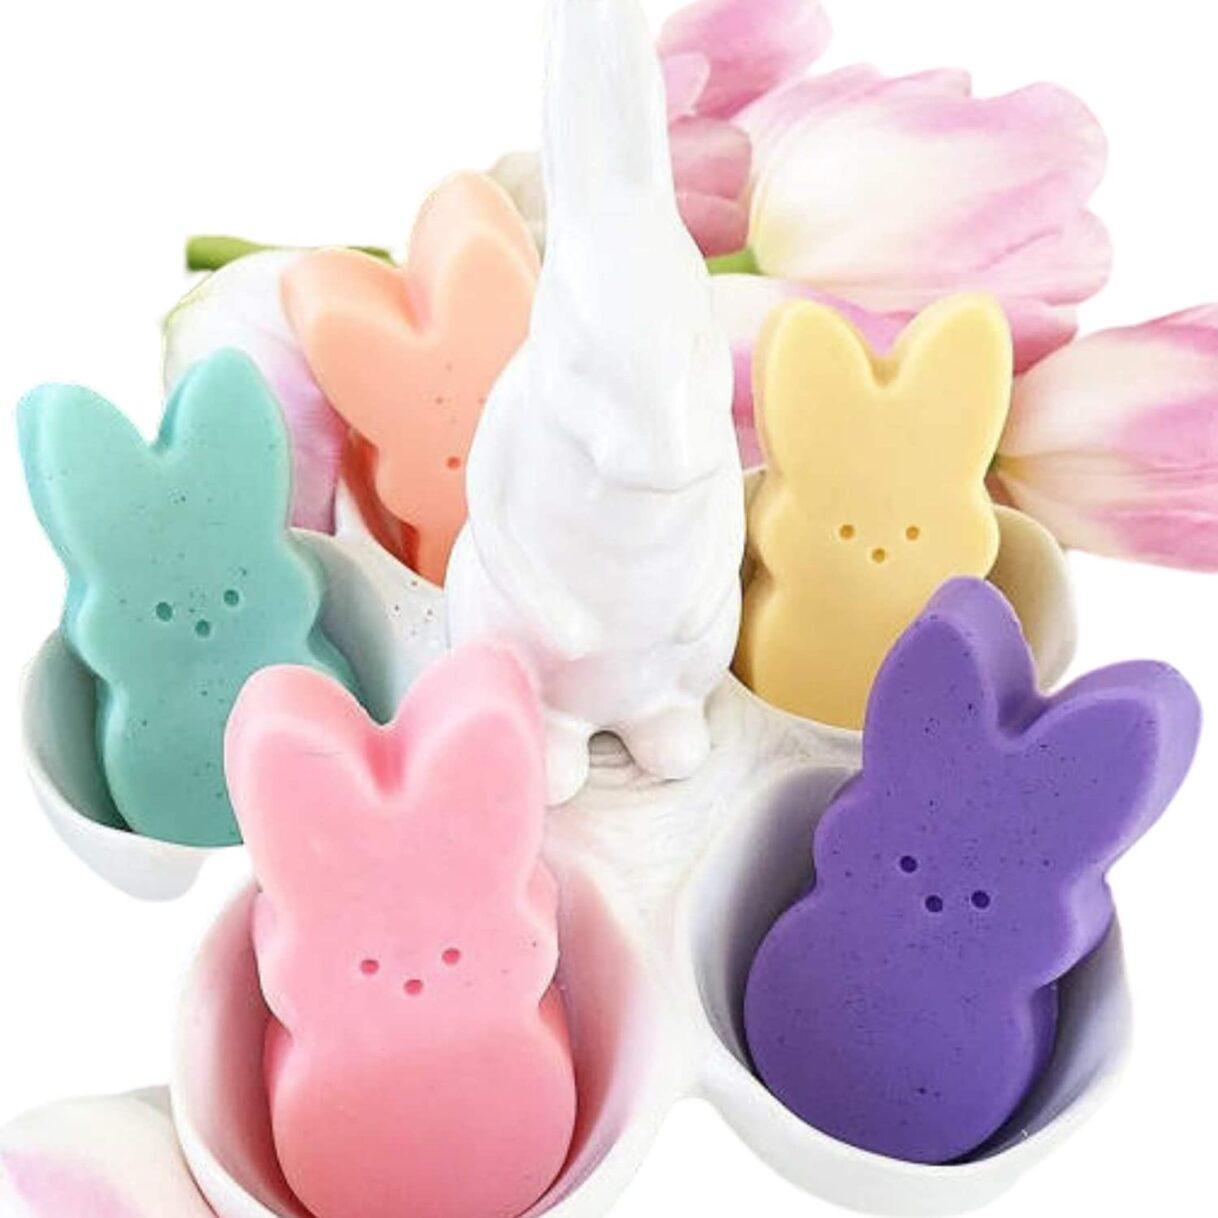 Peep Style Pastel Bunny Glycerin Soap 4 Pack by Sunbasil Soaps – Great for Easter Baskets!